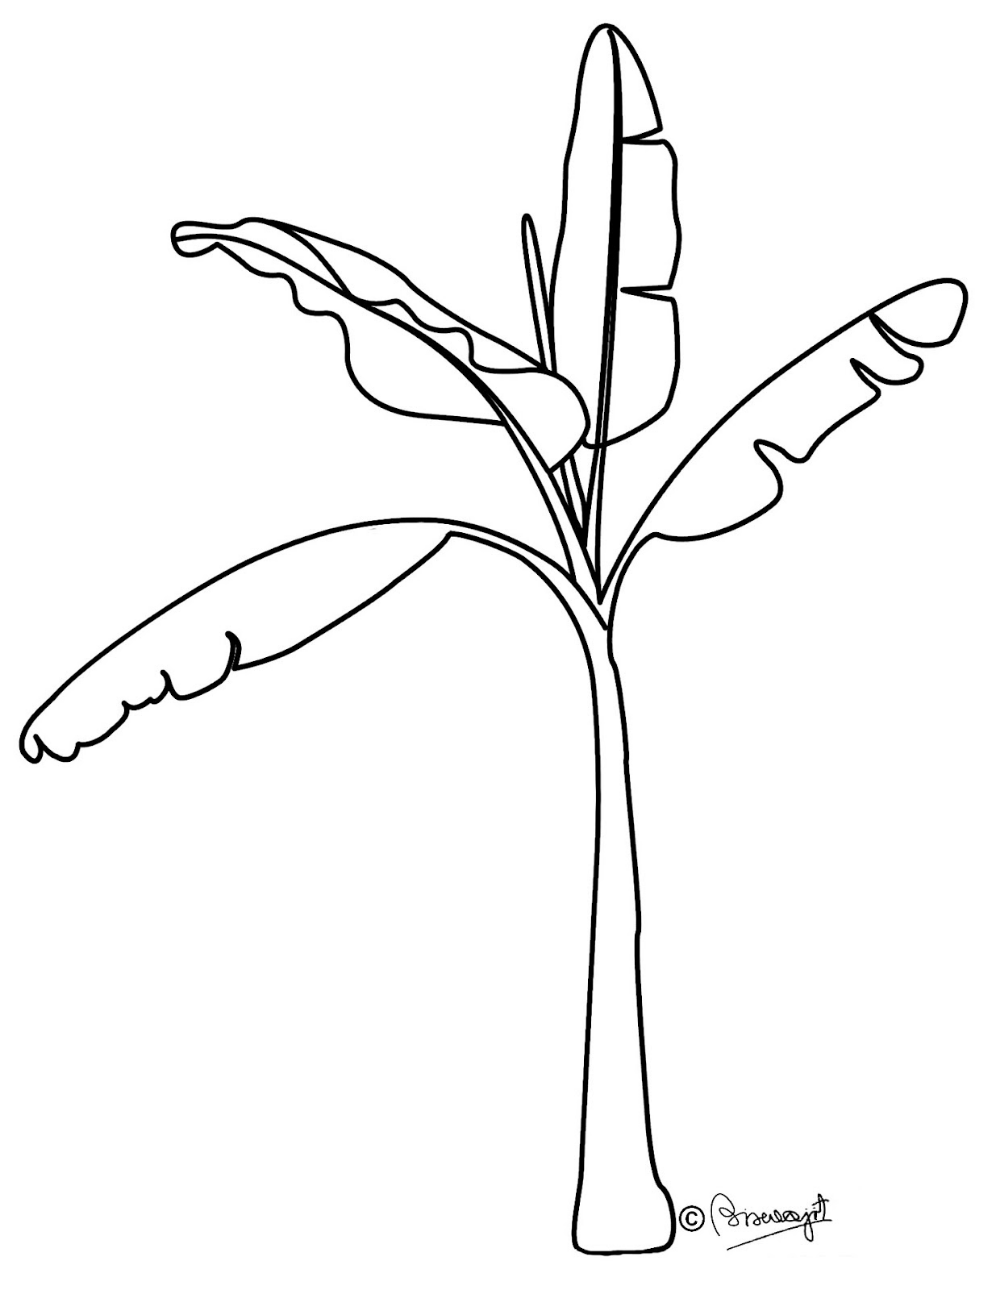 Free Banana Outline Cliparts Download Free Clip Art Free Clip Art On Clipart Library Tree Drawing For Kids Tree Drawing Simple Clipart Black And White